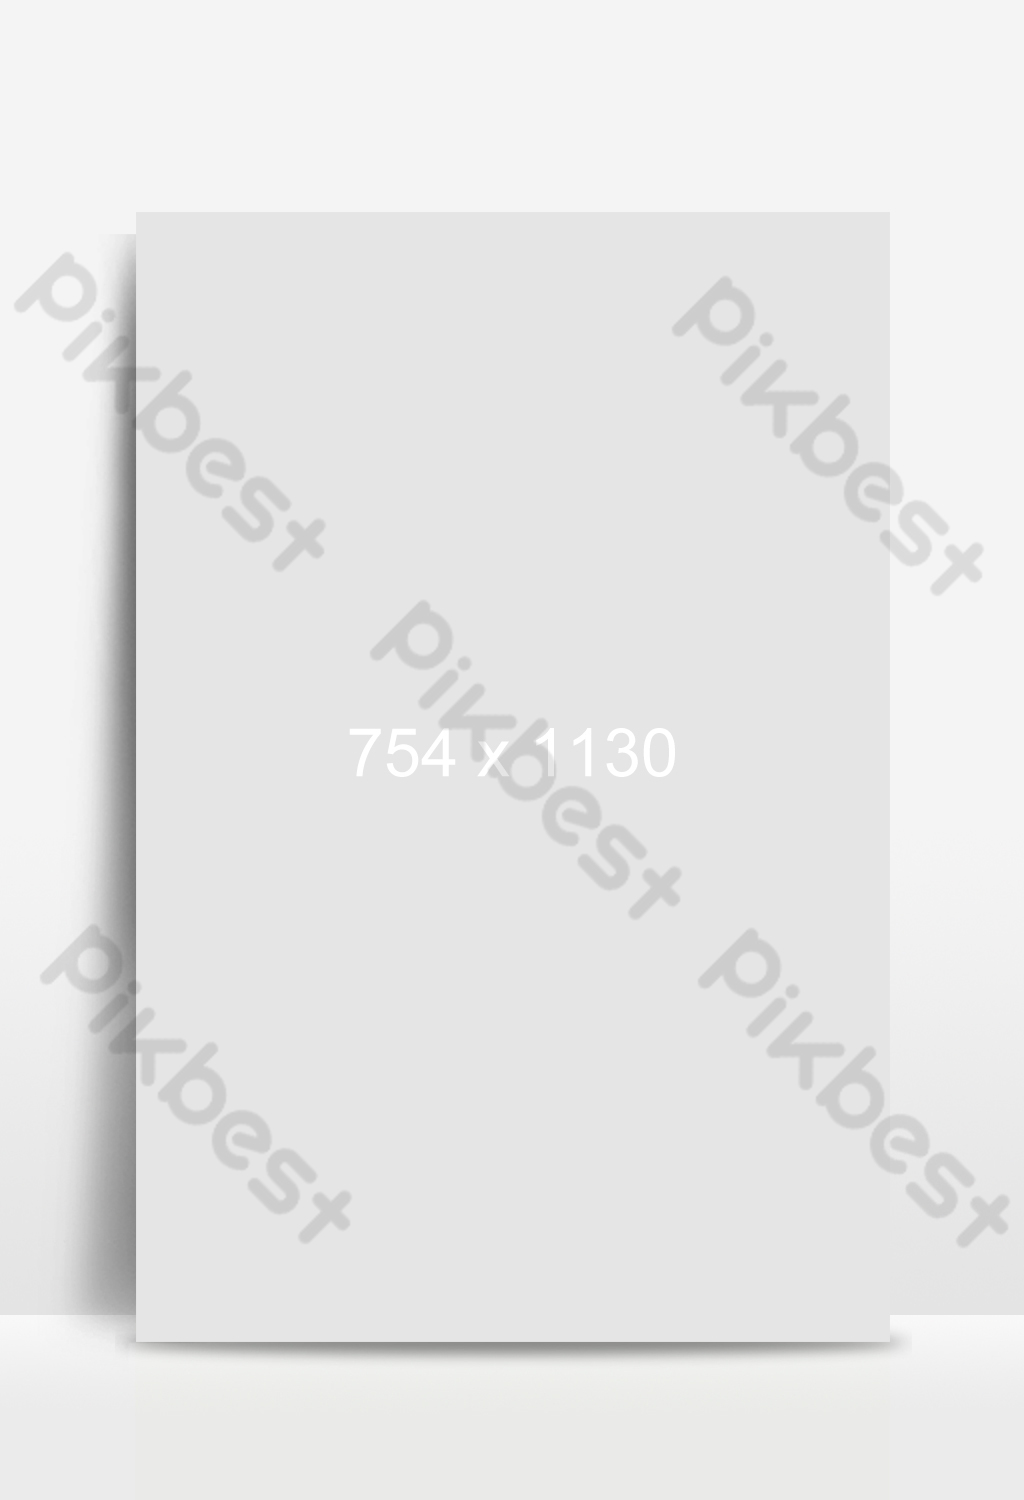 Yoga Purple Minimalist Style Poster Banner Background Backgrounds Psd Free Download Pikbest